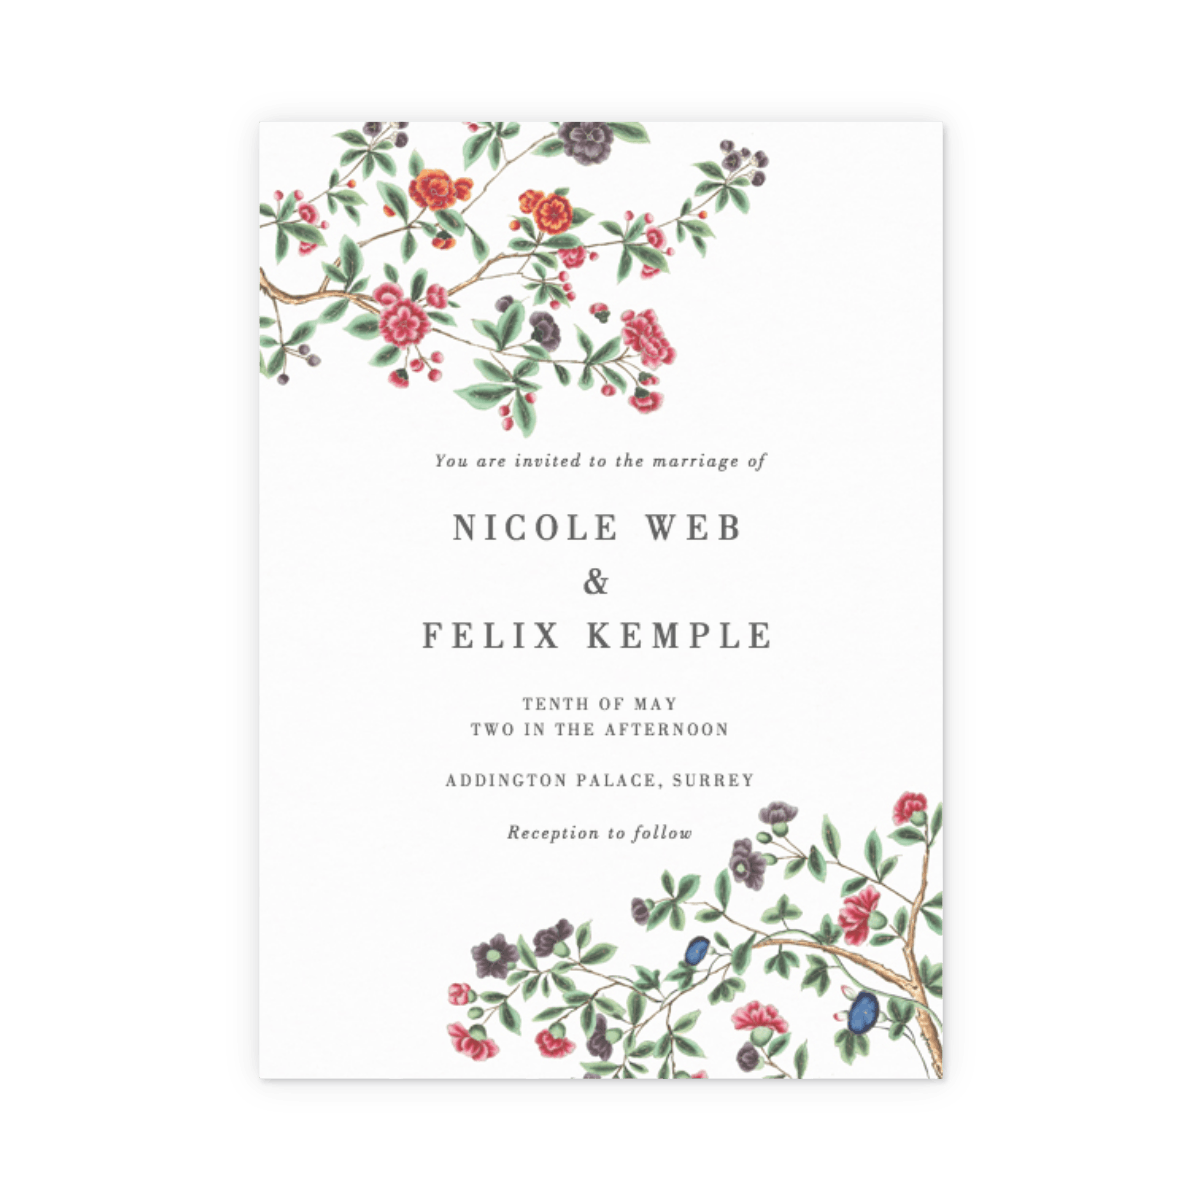 Https%3a%2f%2fwww.papier.com%2fproduct image%2f33753%2f4%2fintricate floral branches 8434 avant 1518528768.png?ixlib=rb 1.1